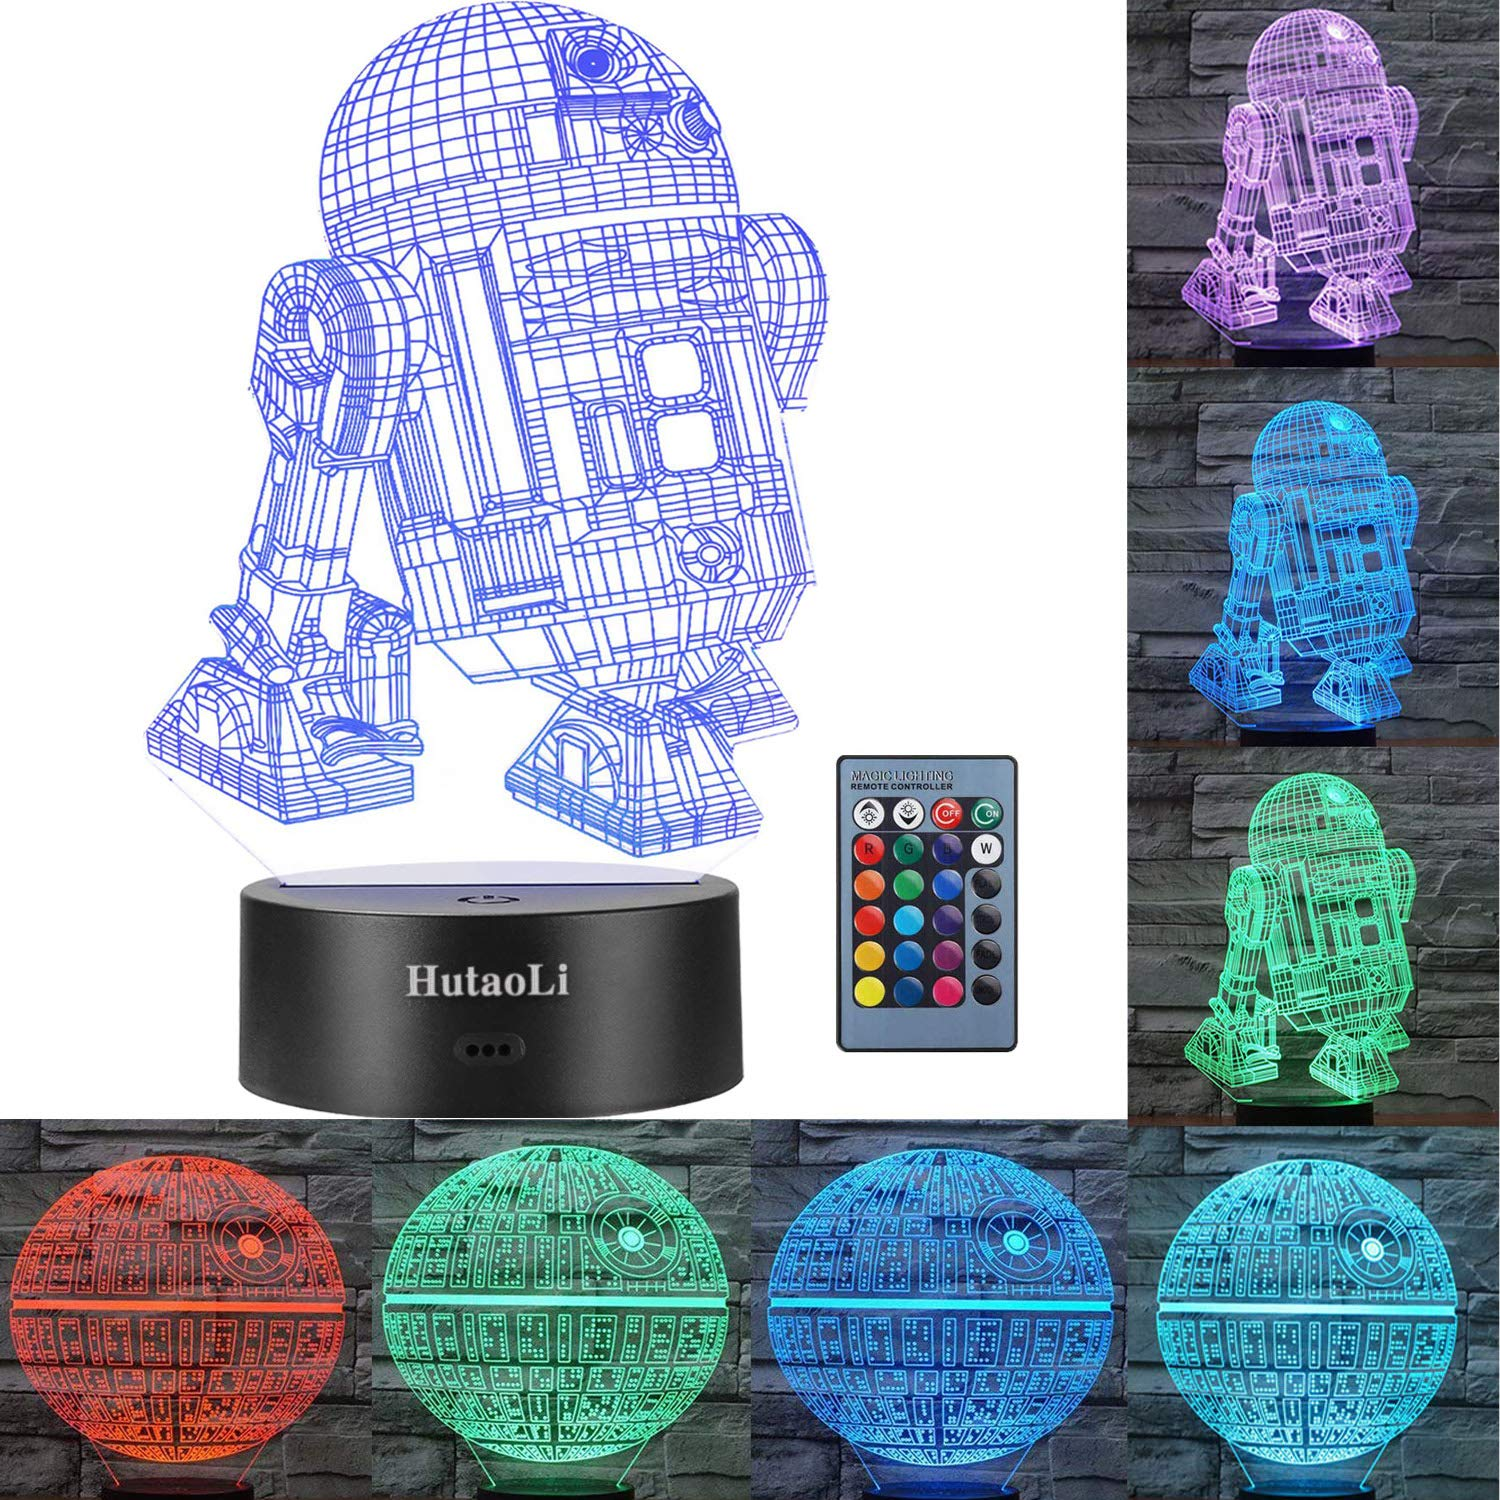 3D Star Wars Night Lights 2 Modes and 7 Color Variations Star Wars Decorative Lights -R2-D2 and Death Star The Best Gift for Children and Star Wars Fans (Dinosaur Night Light)